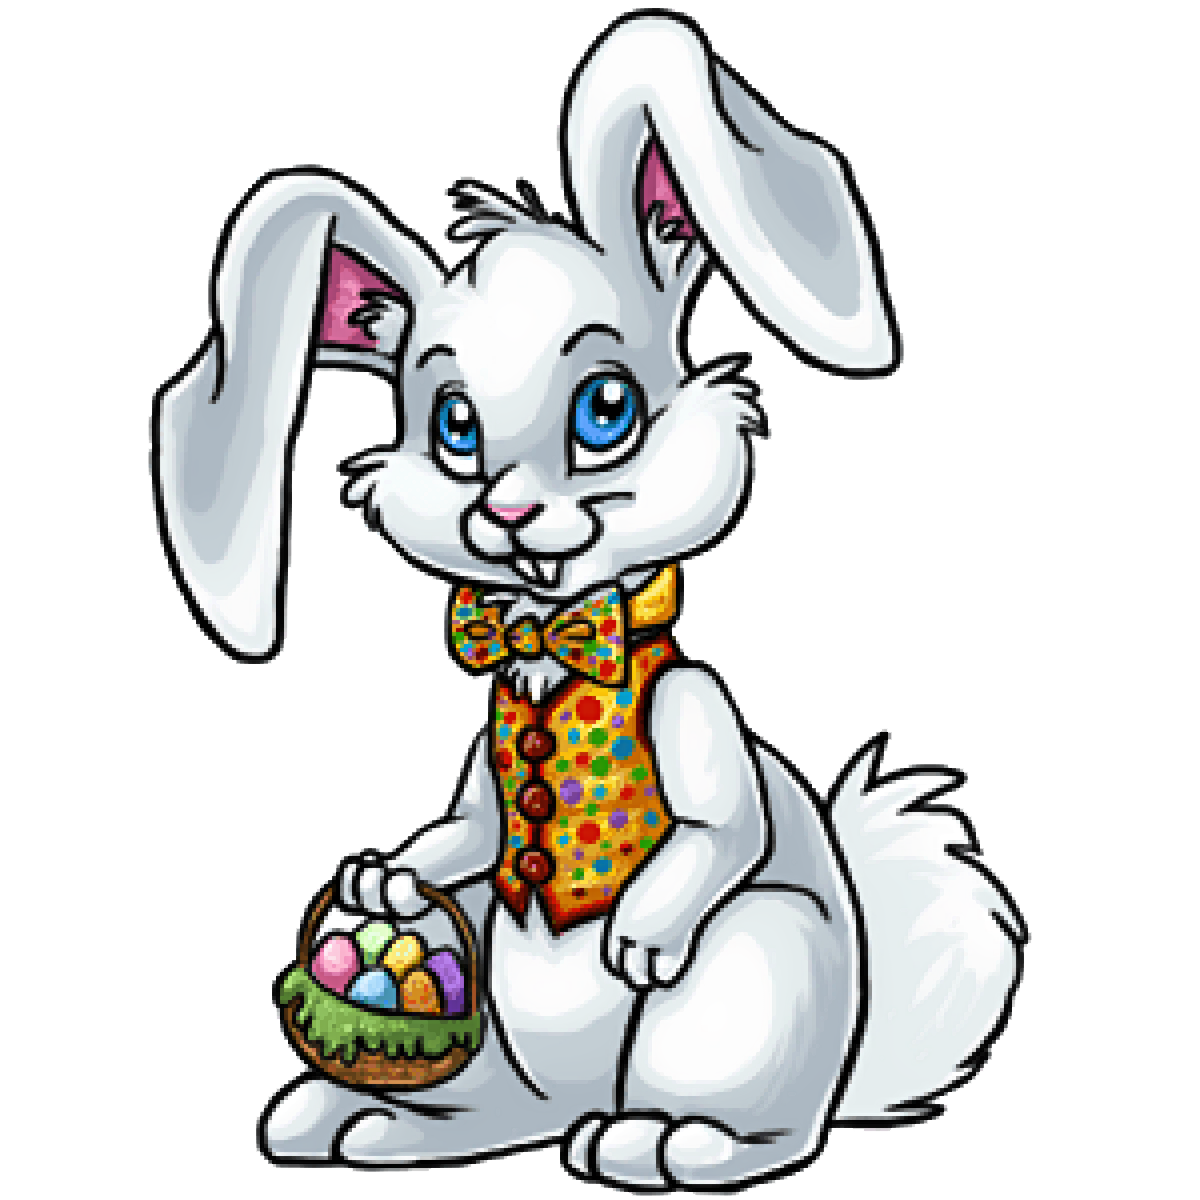 1200x1200 Images For Gt Easter Rabbit Vector Holidays